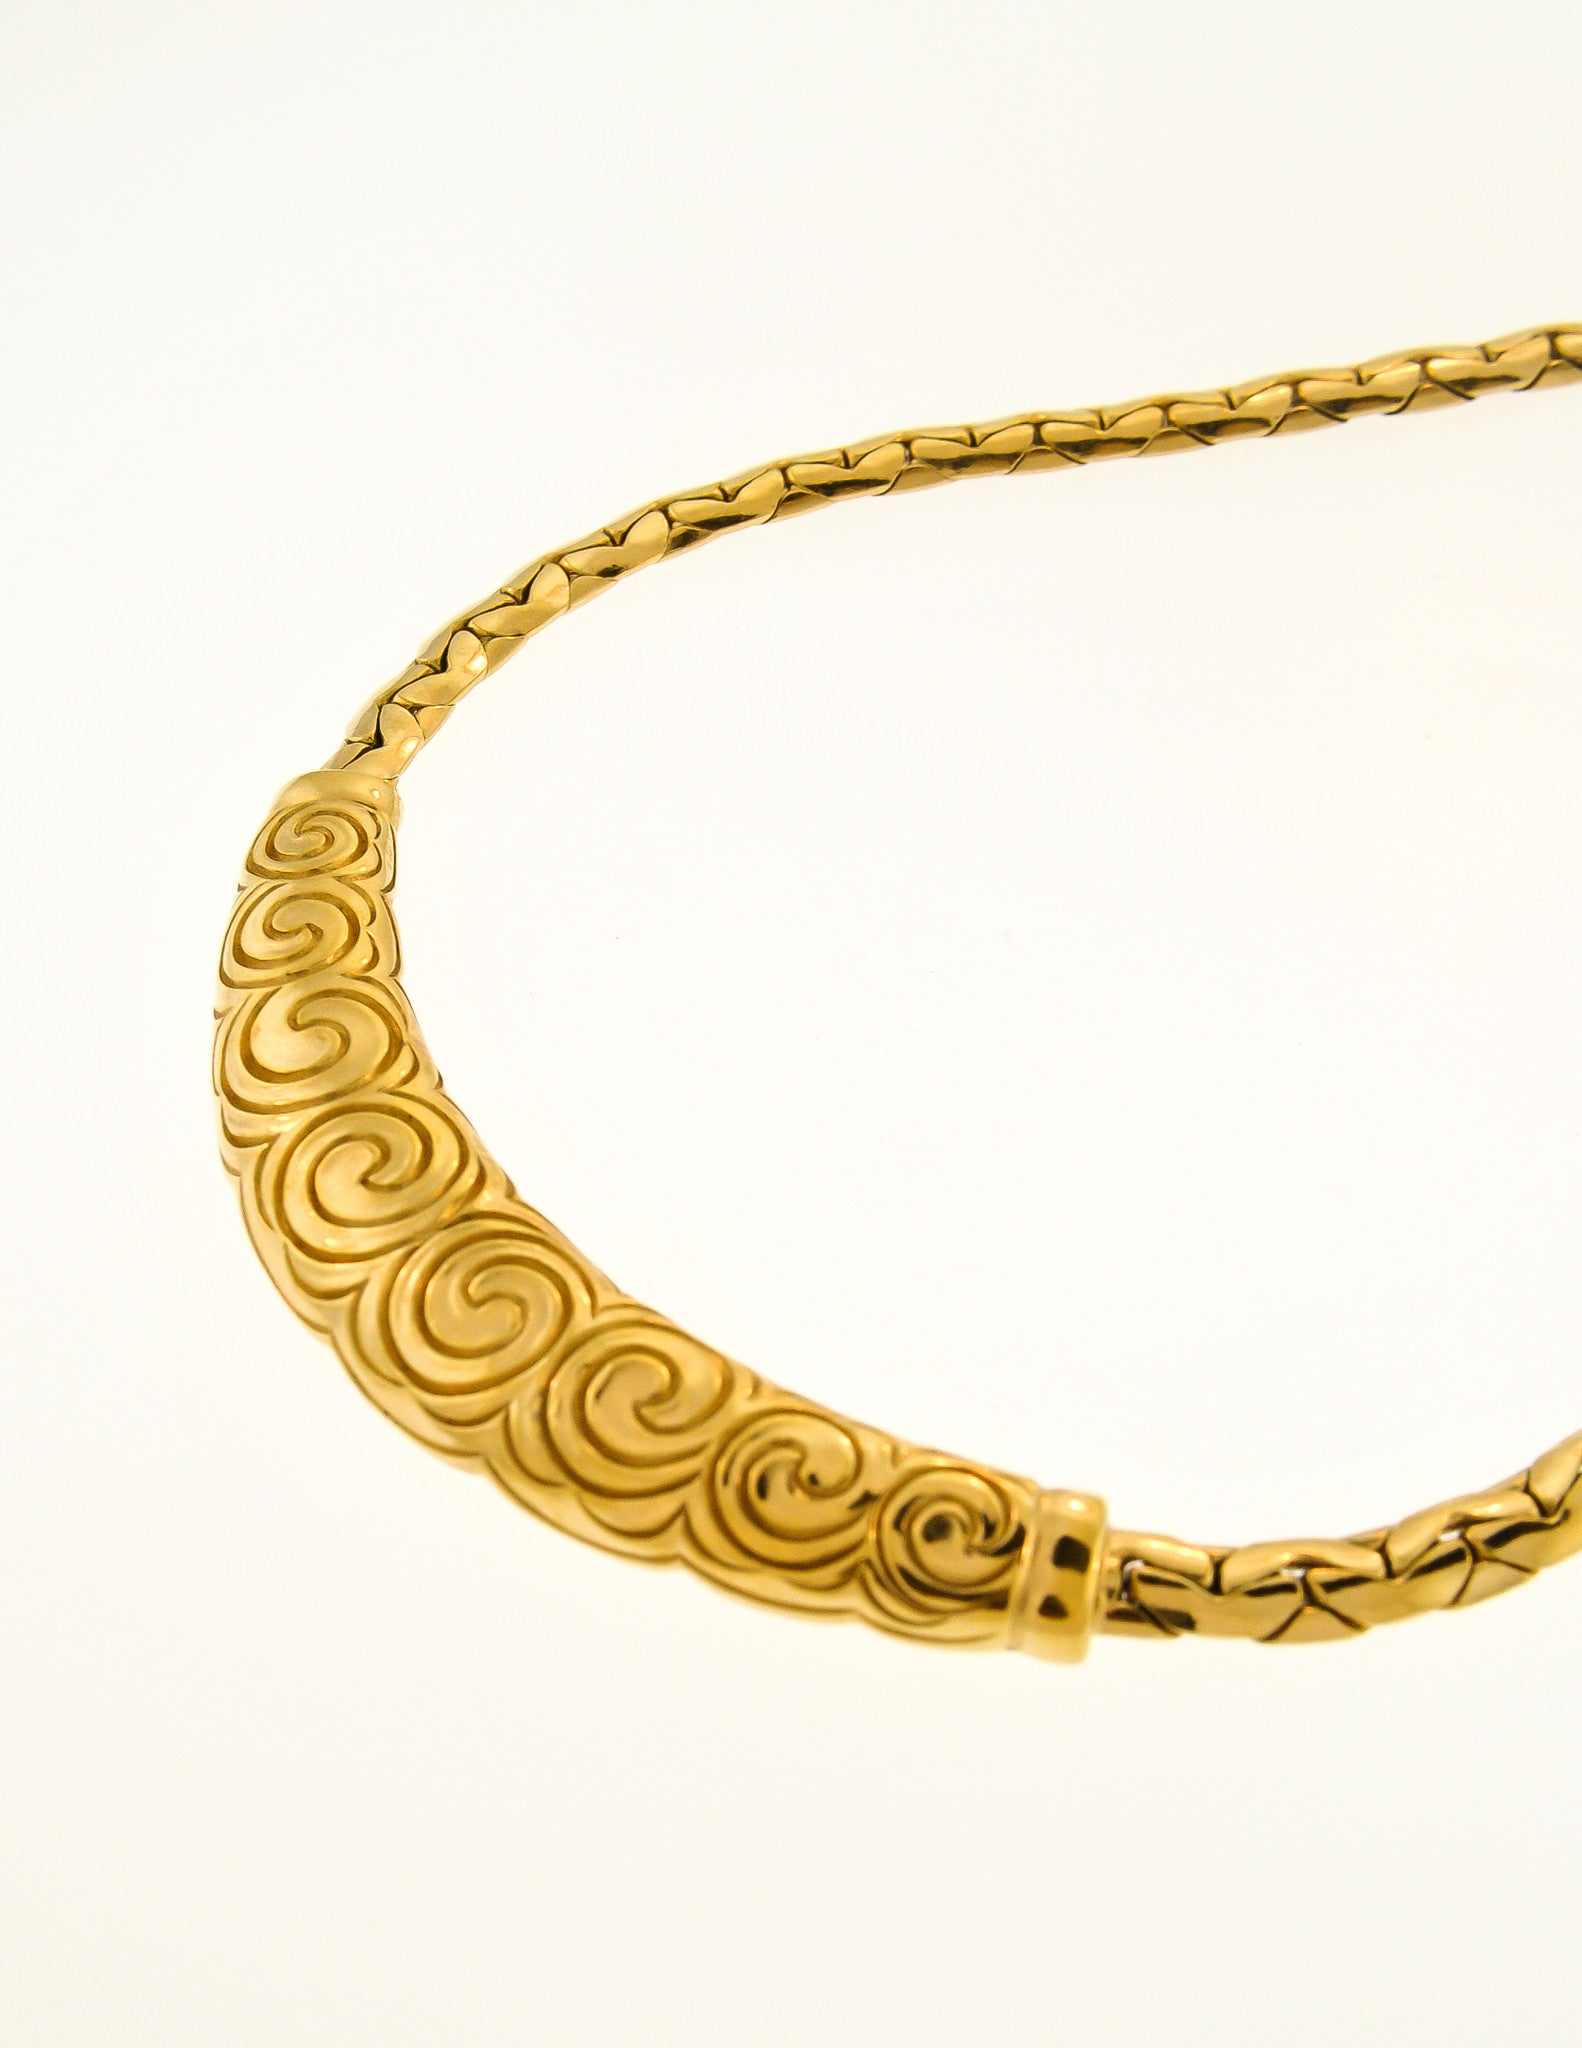 Christian Dior Vintage Gold Swirl Necklace From Amarcord